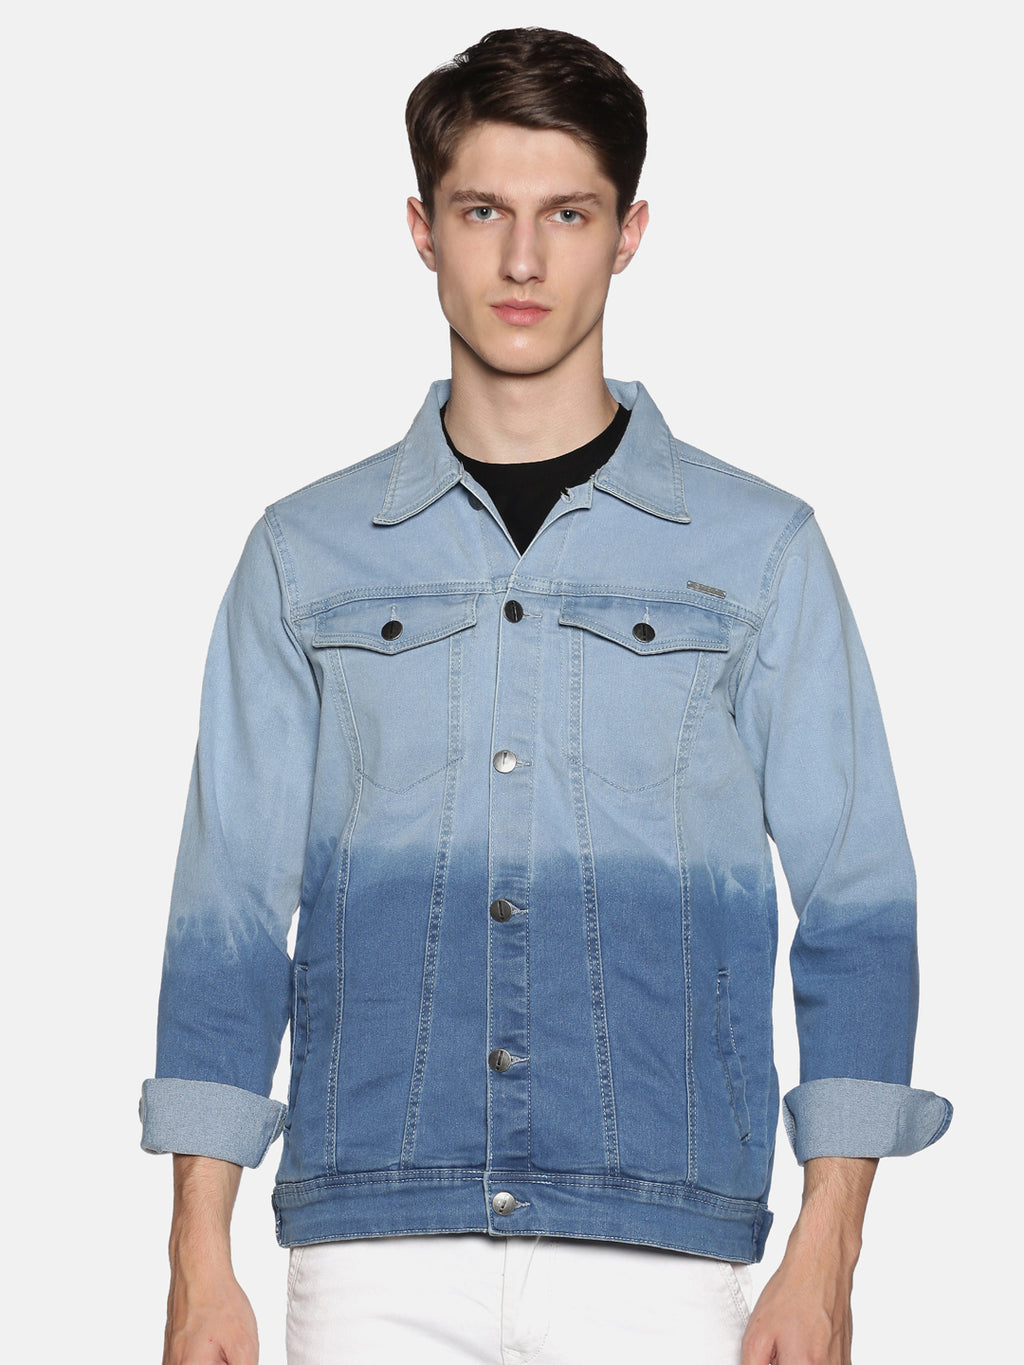 Impackt Men's Full Sleeves Denim Jackets With Ombre Wash